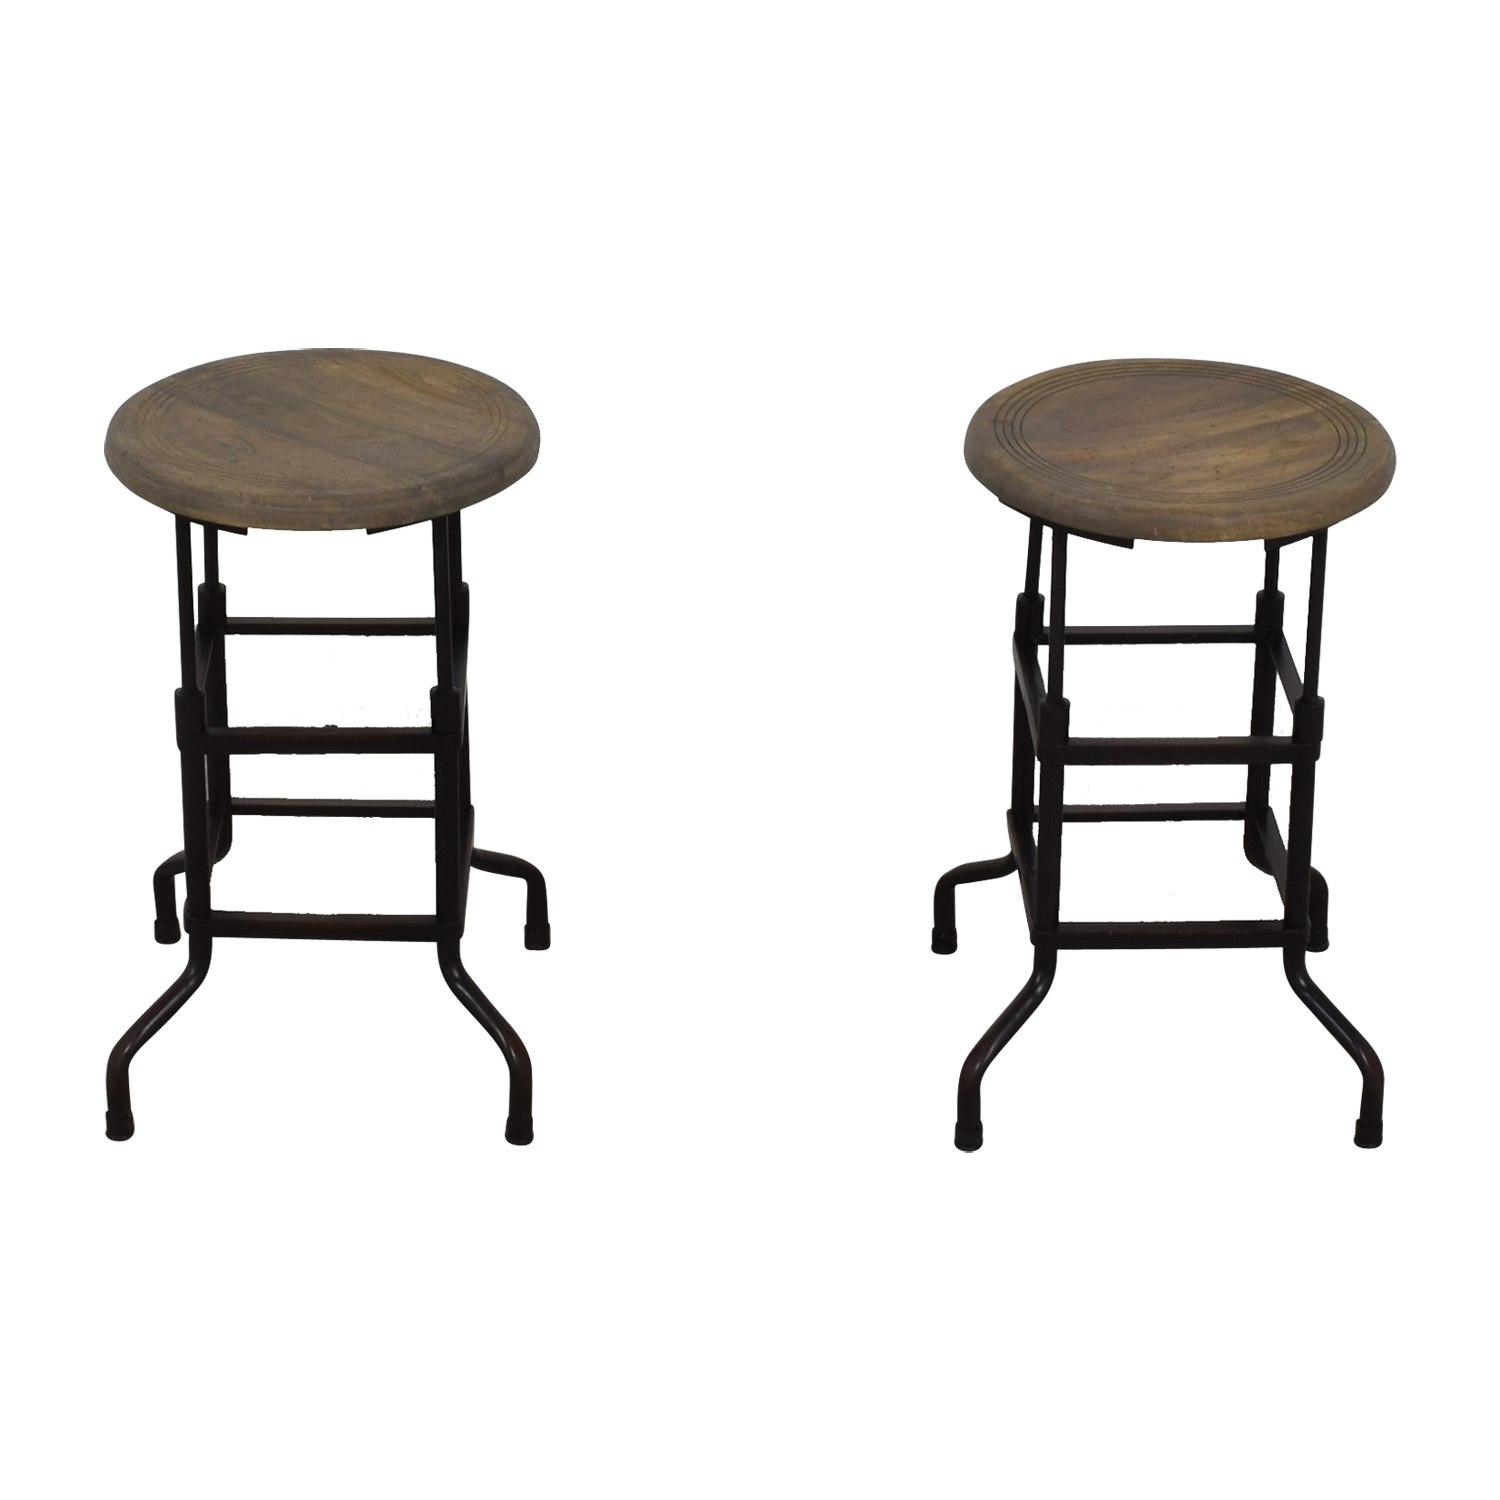 Restoration Hardware Restoration Hardware 1920s American Factory Stools for sale